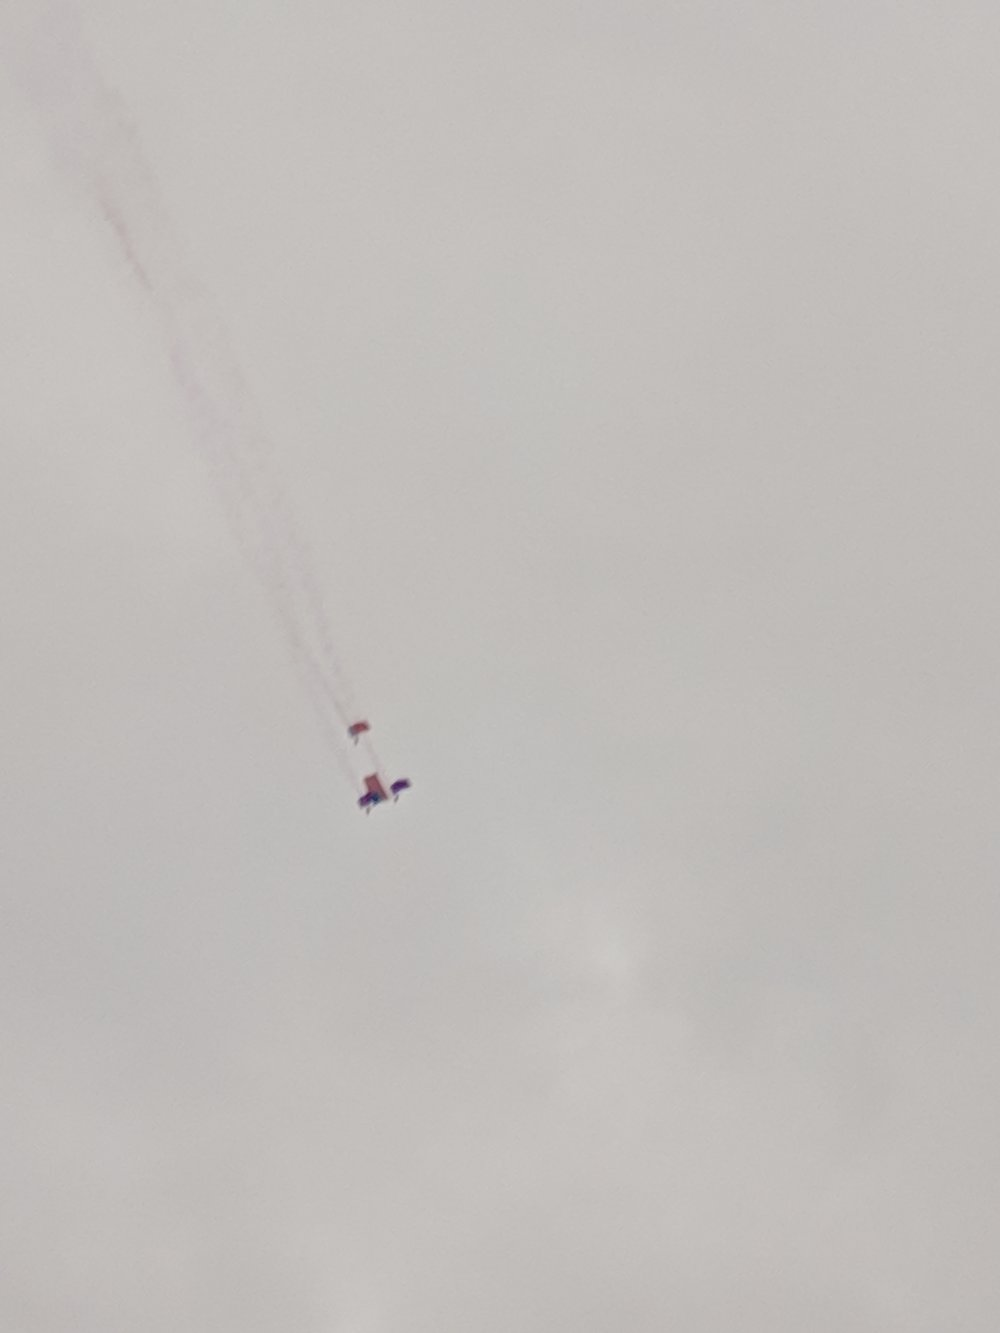 Super blurry image, but at the start line there's a synchronized parachute jump where the parachuters carry the flag through the air. It was pretty cool.